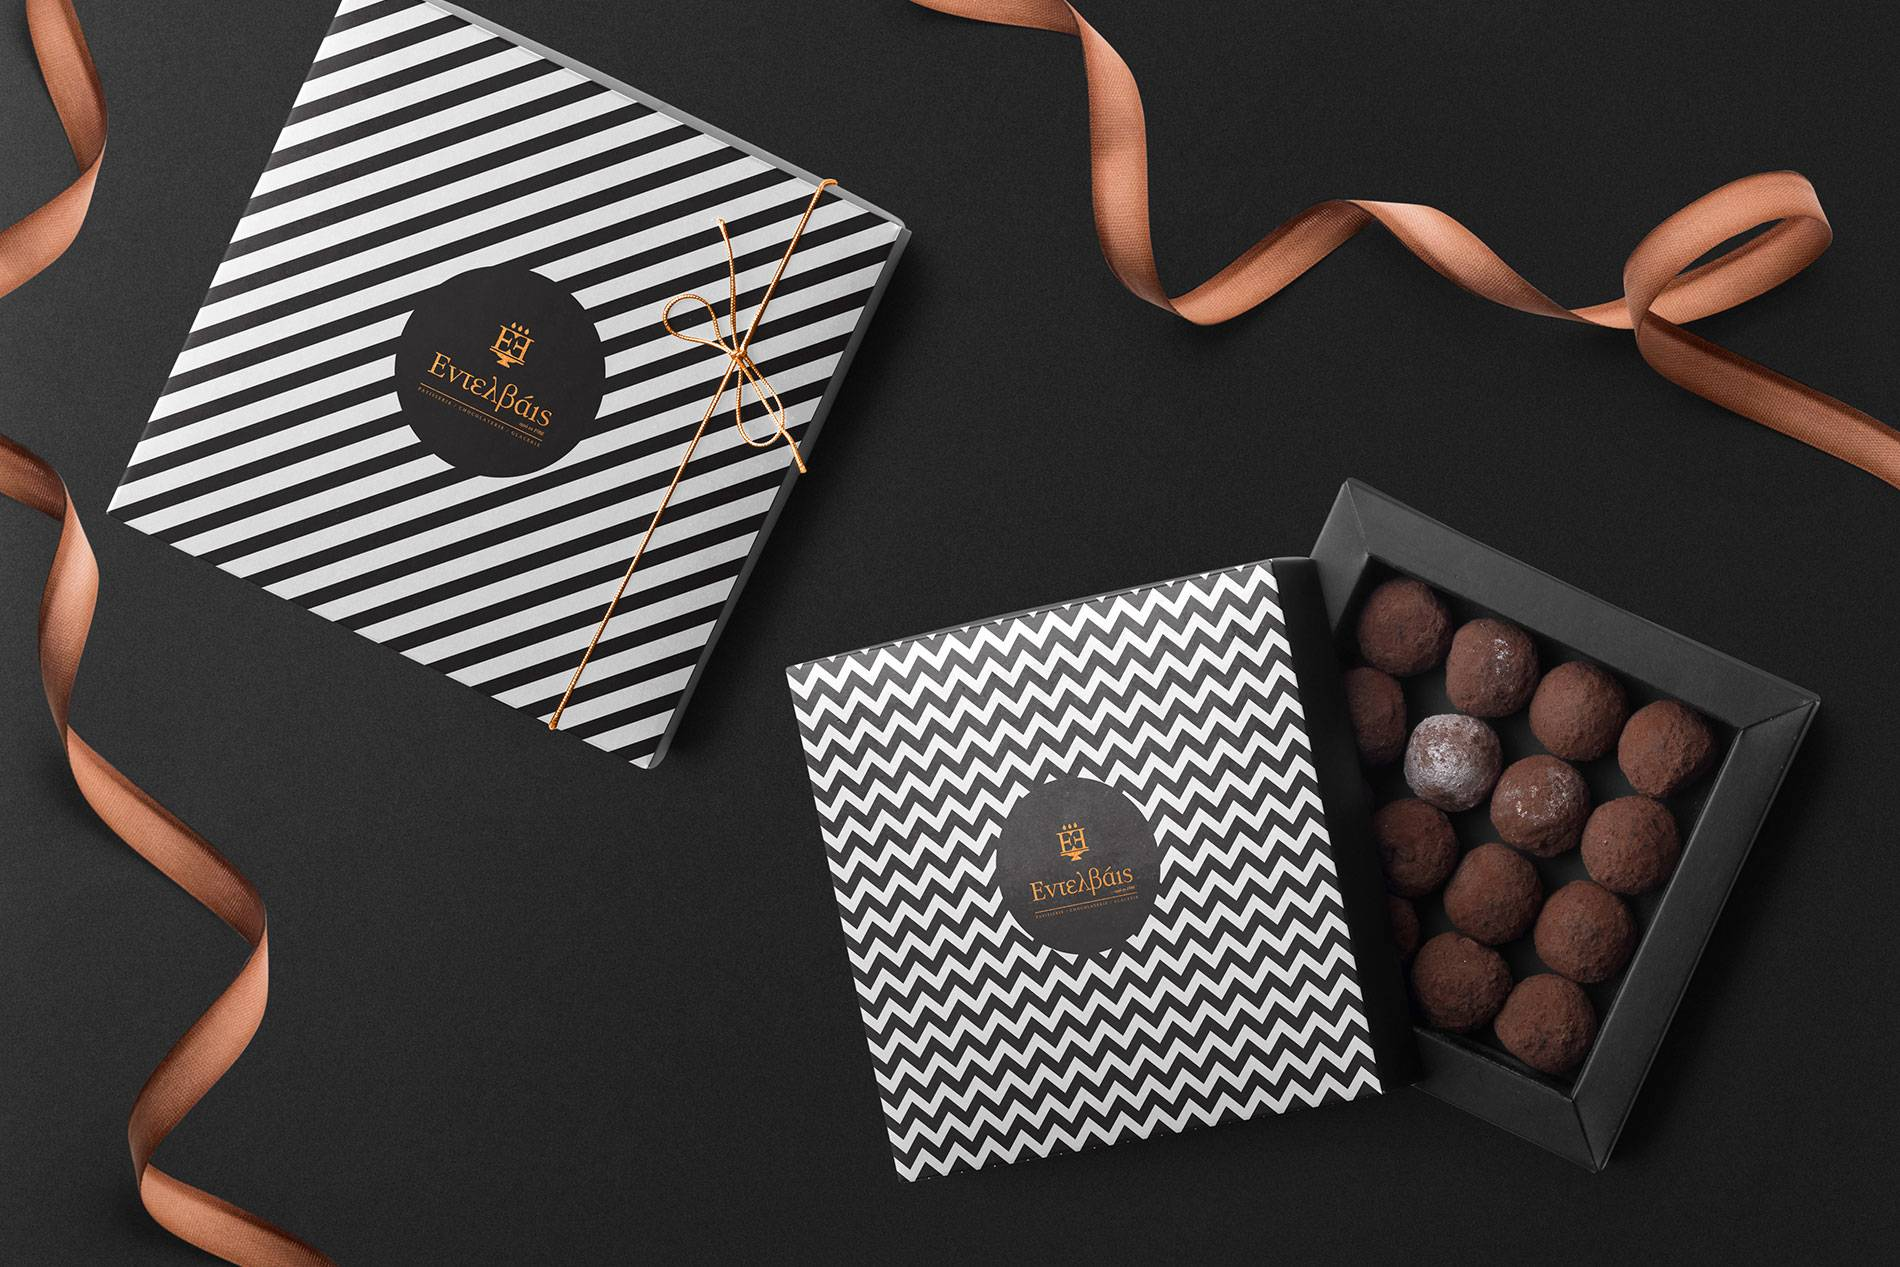 The Rebranding and Packaging for the Entelvais Patisserie, from Greece / World Brand Design Society